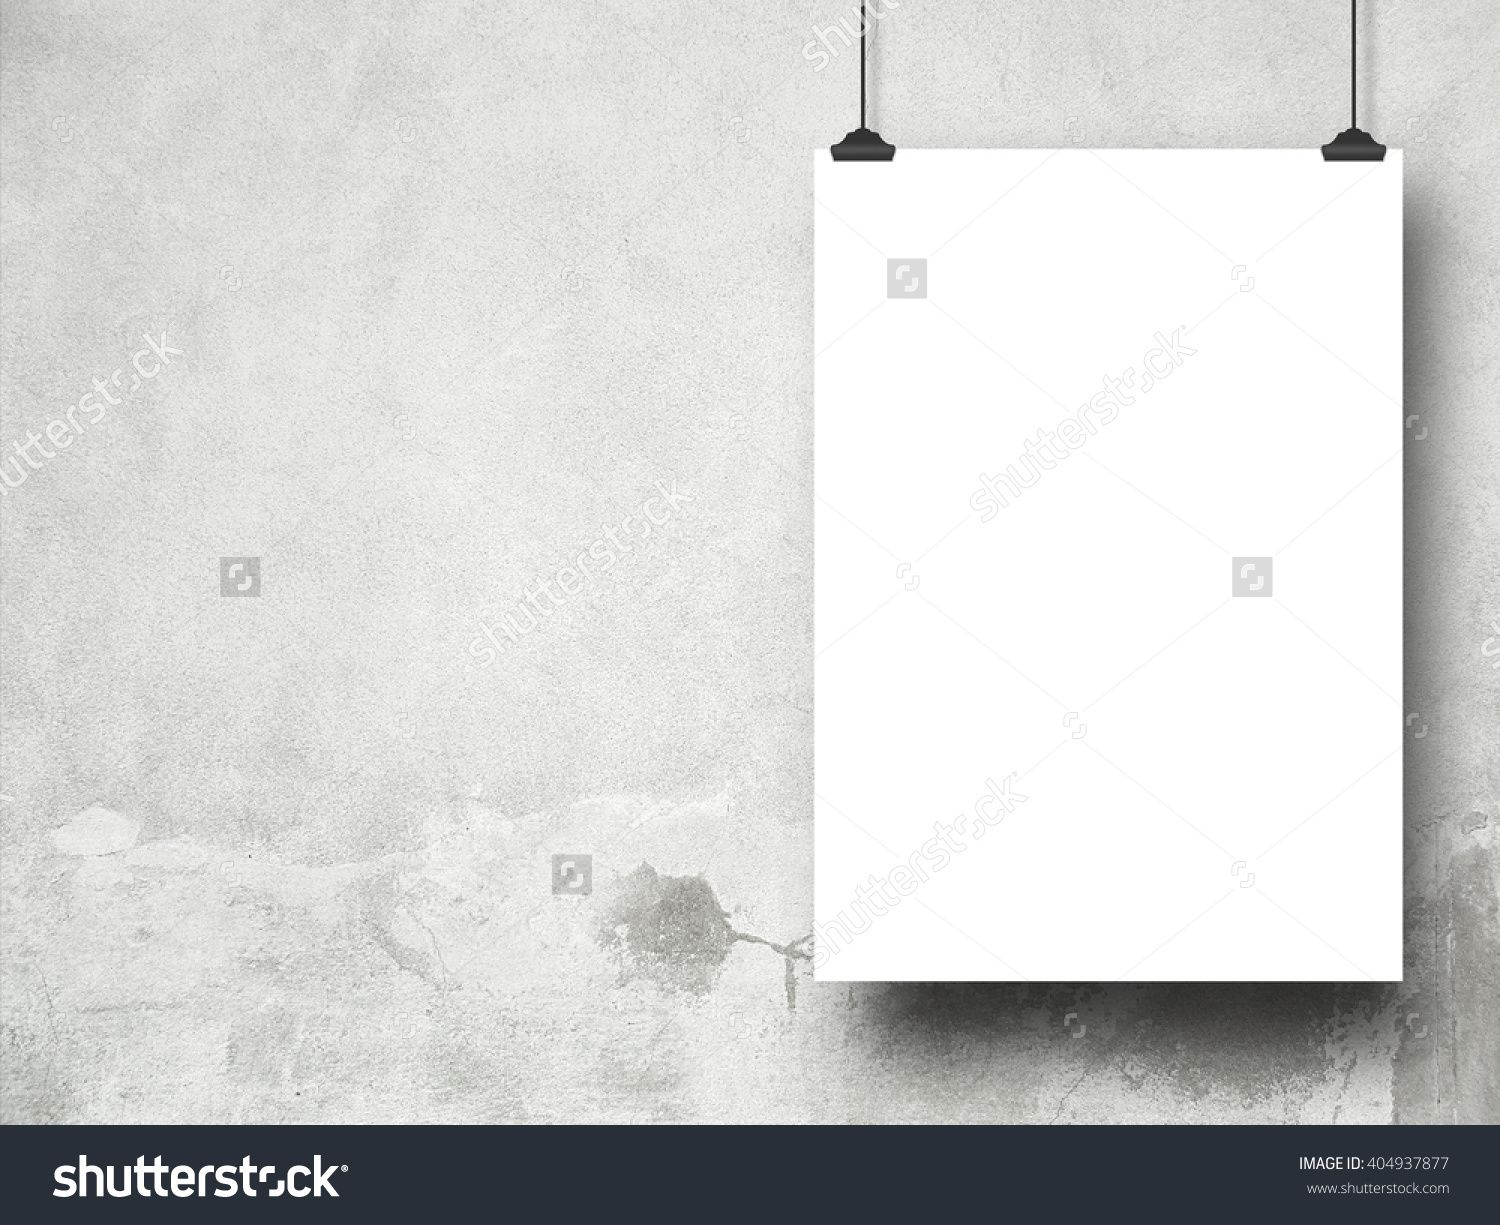 Close-up of one blank frame hanged by clips against grey weathered wall background